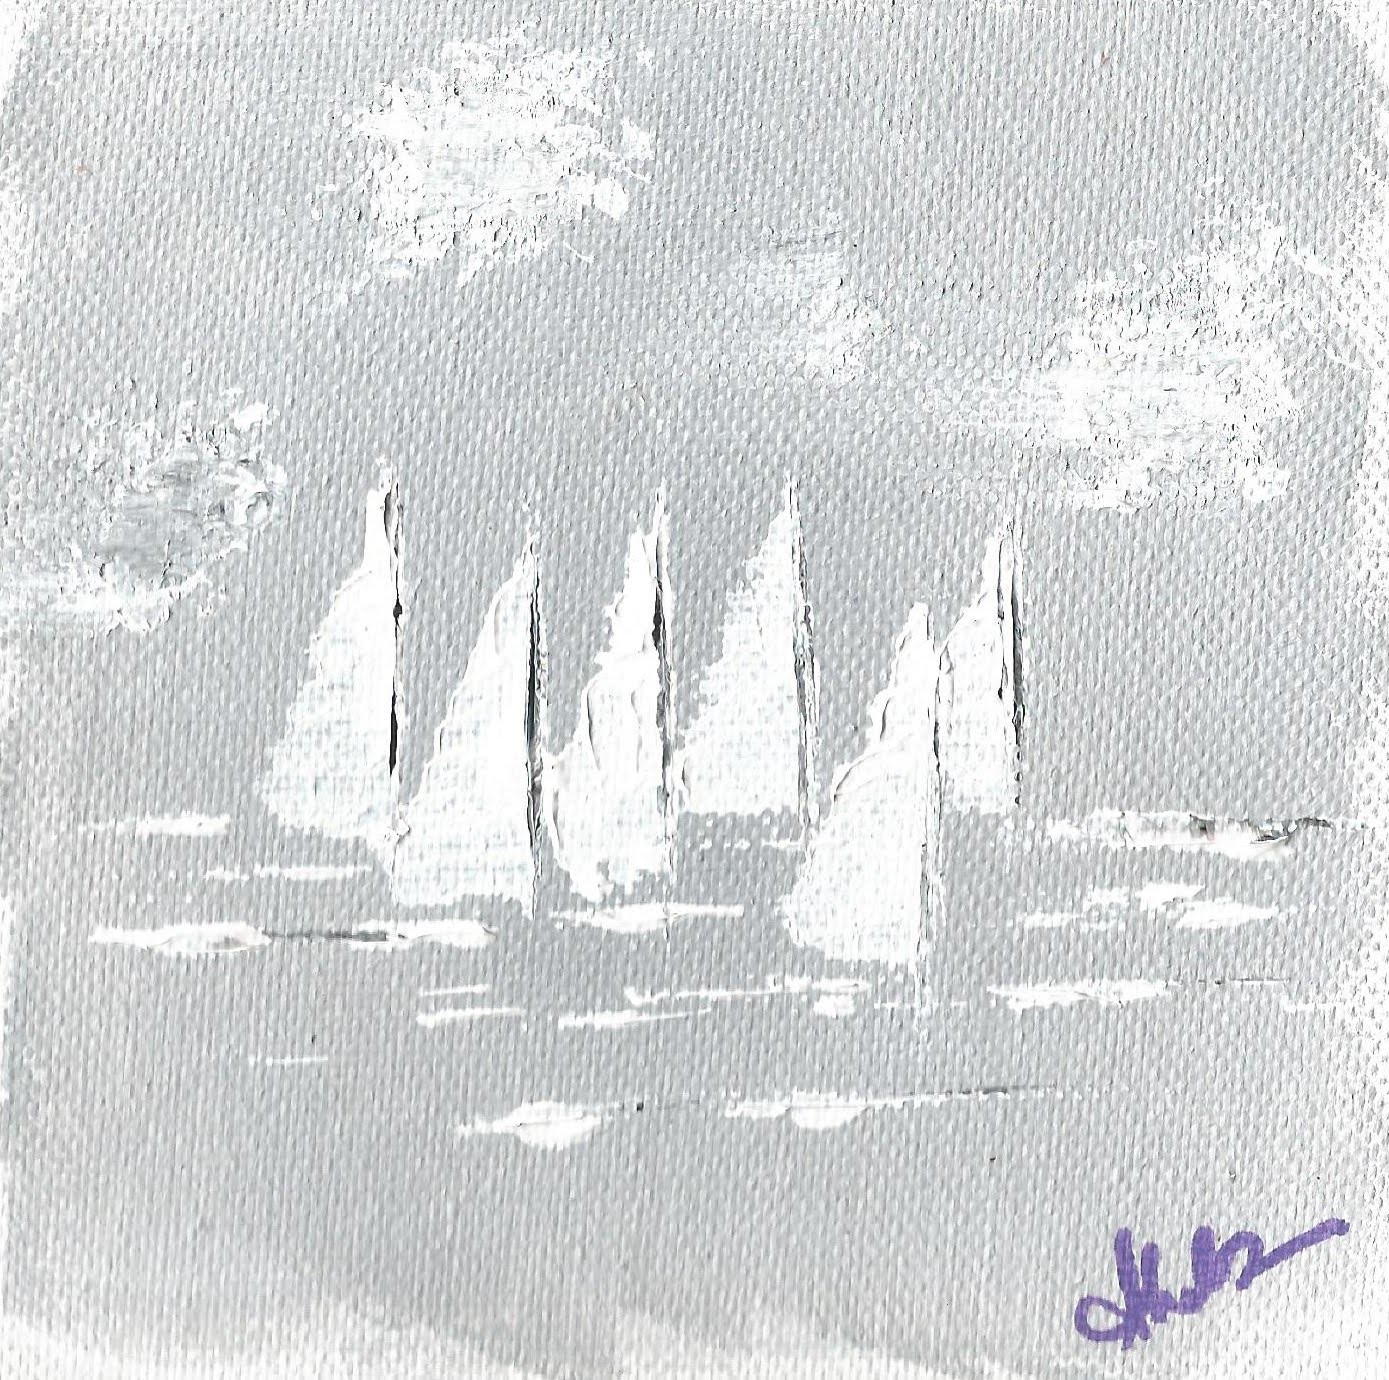 Painting of a sail boats by Sucheta Jadhav for India's first solo circumnavigator Dilip Donde